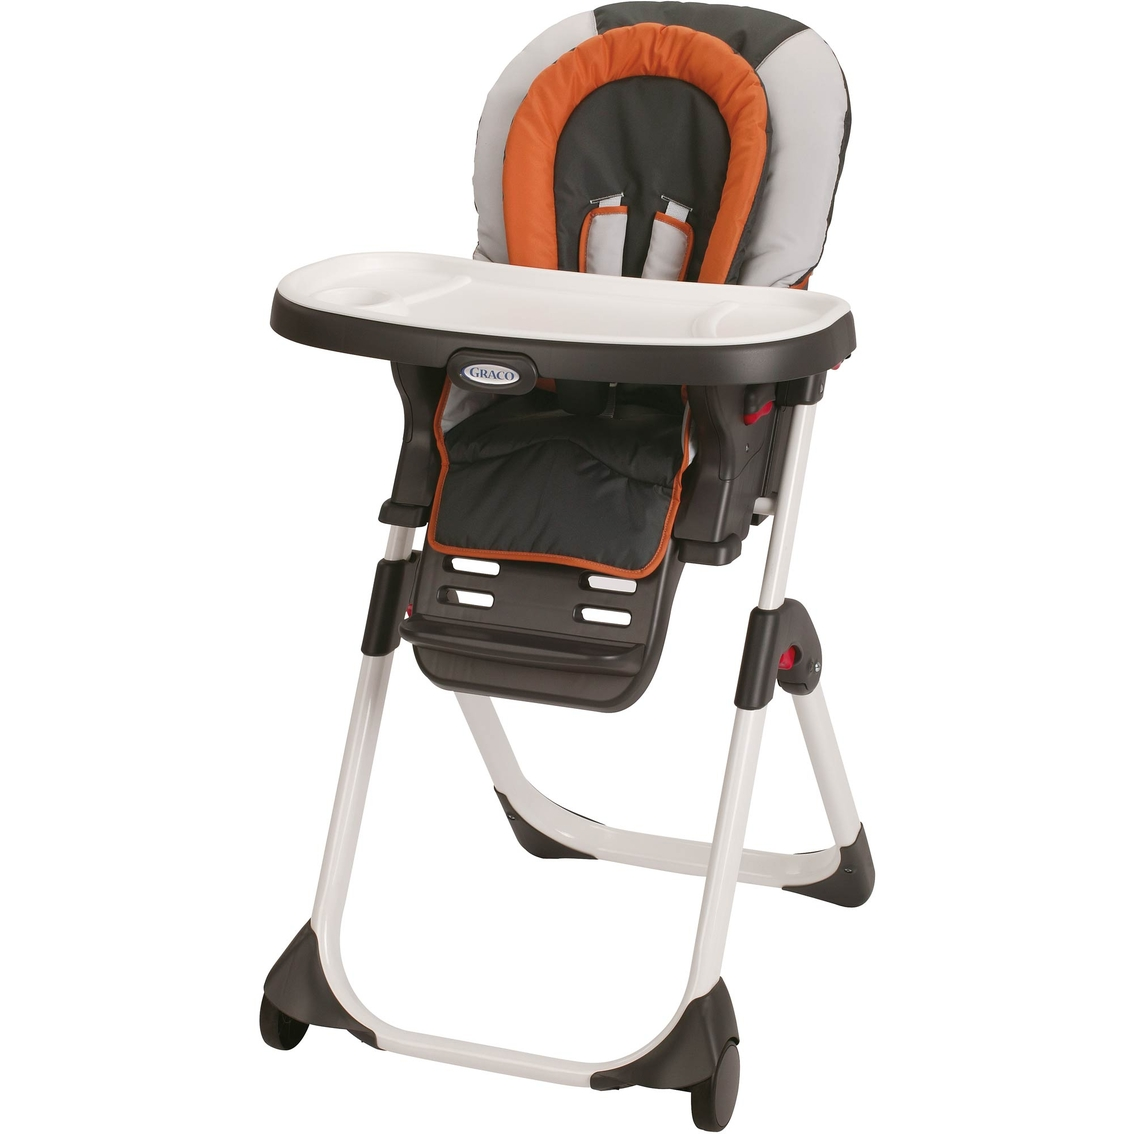 graco duodiner lx 3 in 1 highchair instructions swivel chairs for living room highchairs baby and toys